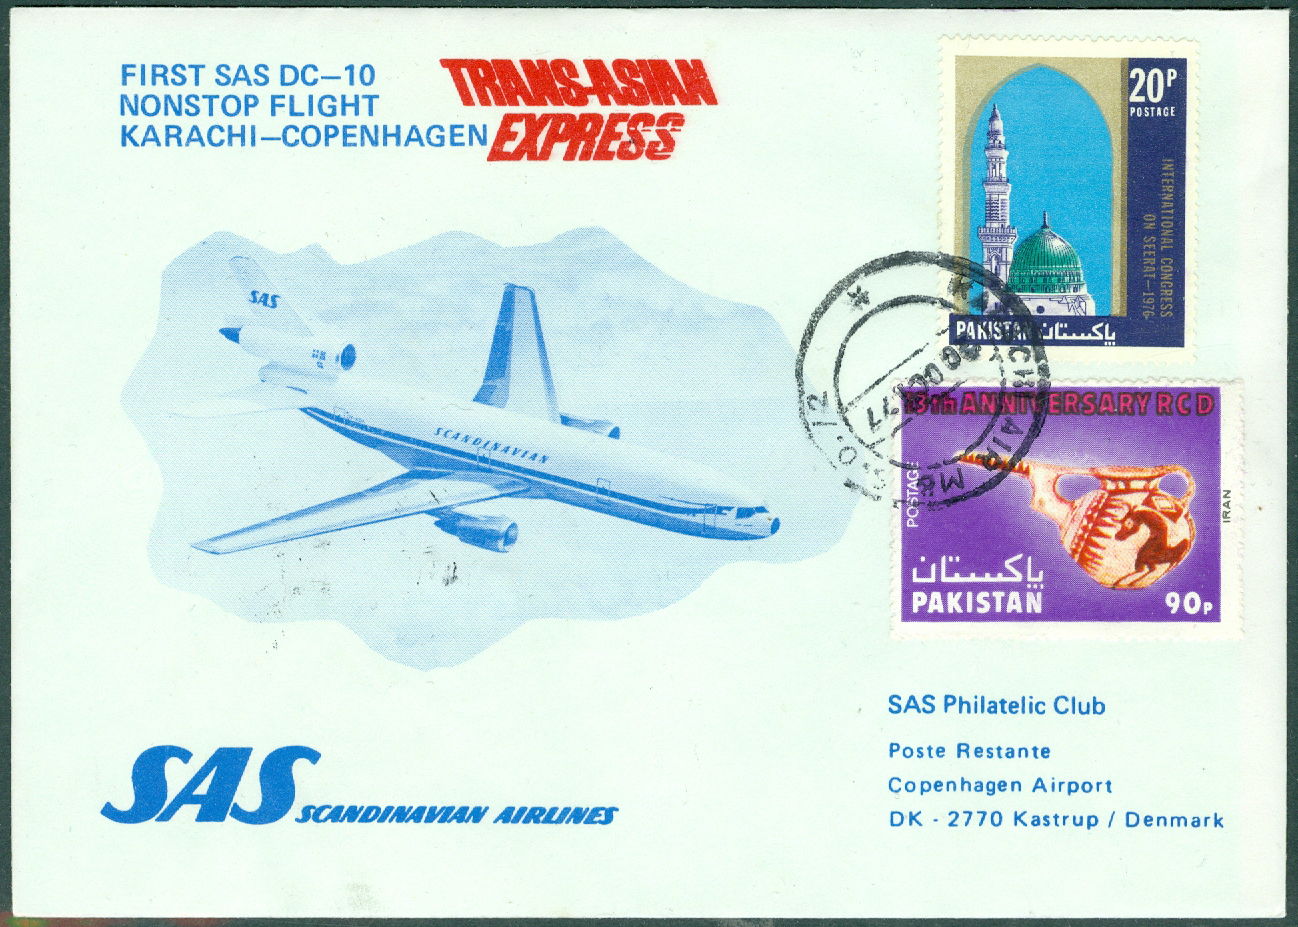 Pakistan - 1977-10-20 - First SAS DC-10 Nonstop Flight Karachi - Copenhagen